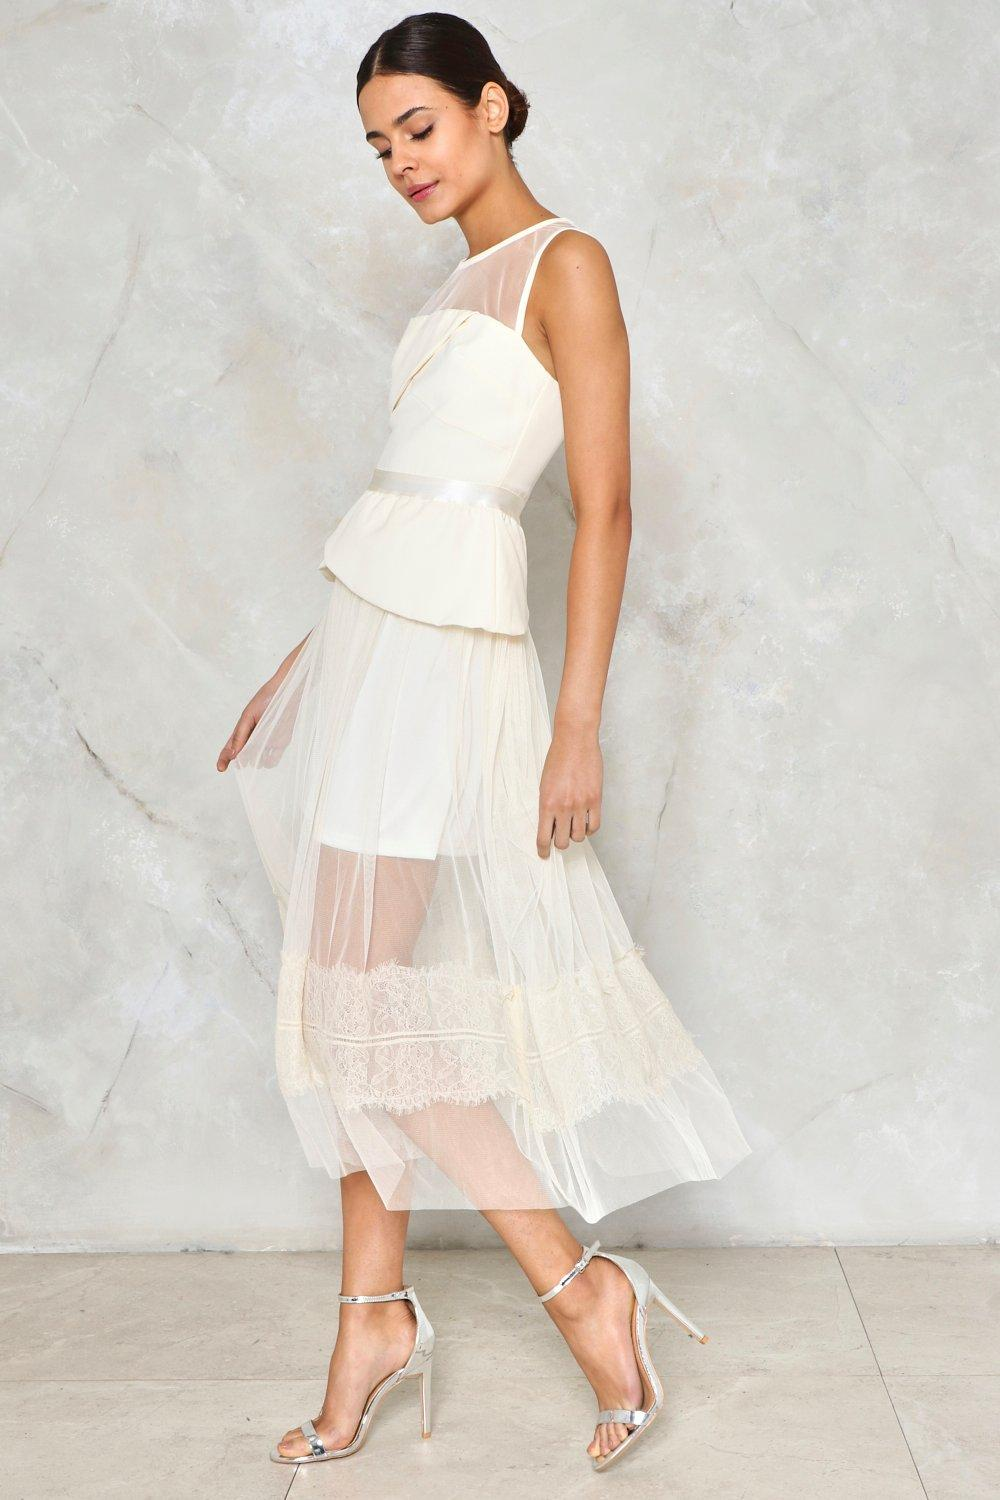 69f8b5876c As Far as I Can See Sheer Tulle Dress | Shop Clothes at Nasty Gal!